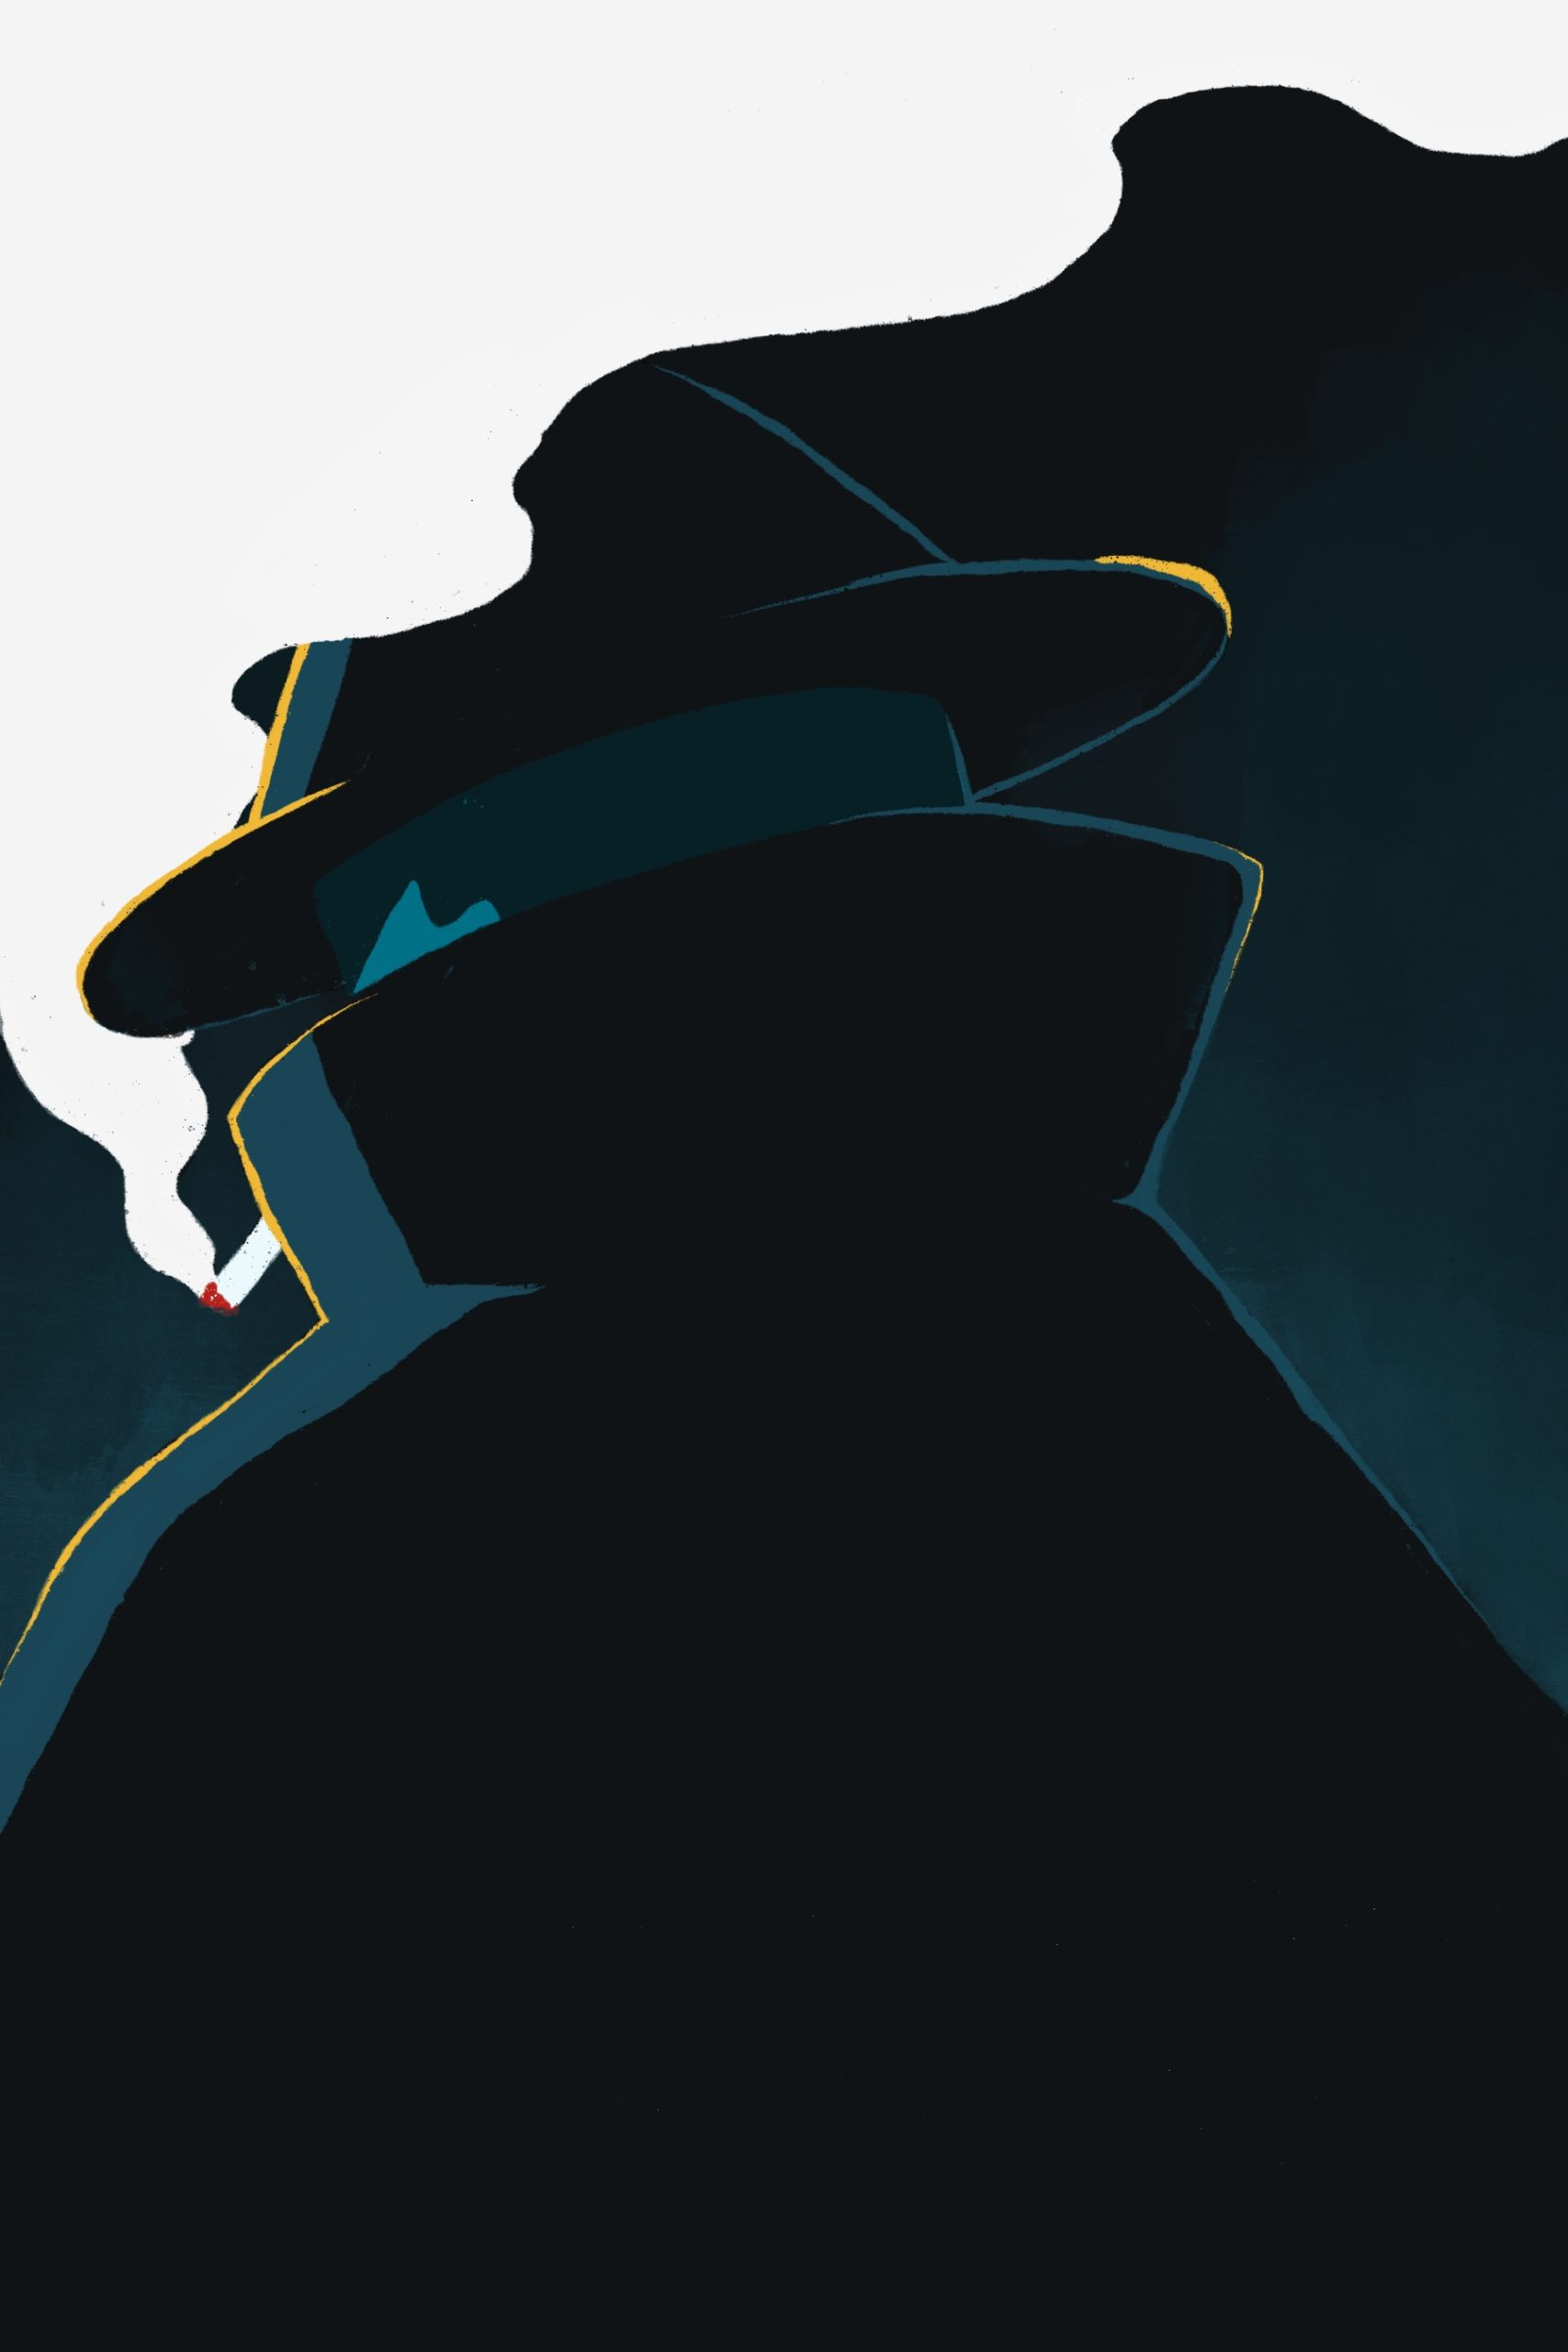 leeds illustration detective crime noir illustrator